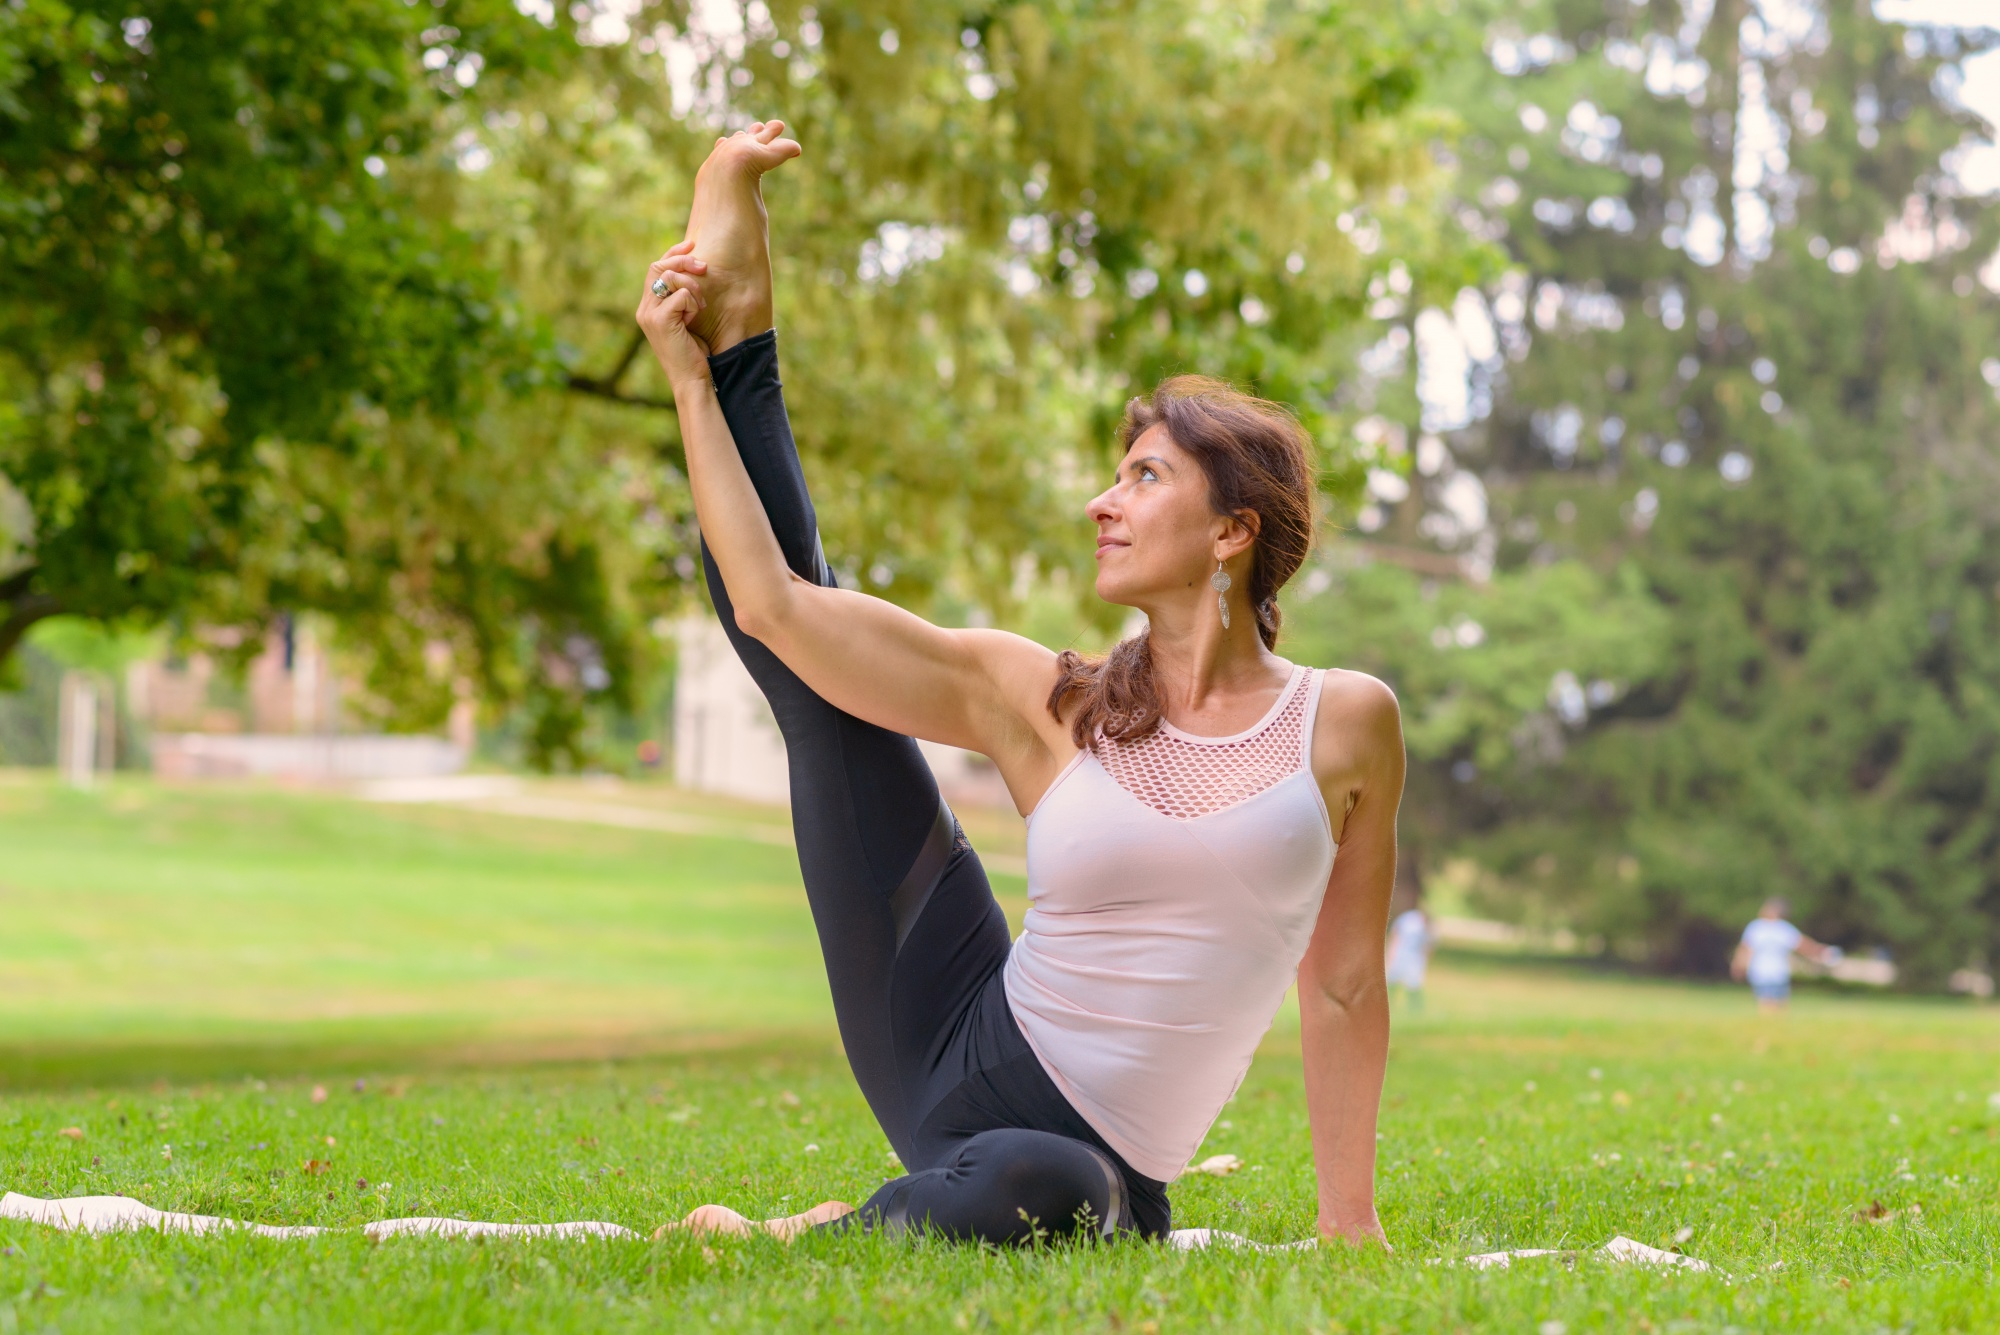 Starting a self care routine, Female adult yoga artist with brown hair doing leg exercises in meadow on top of white mat during the daytime